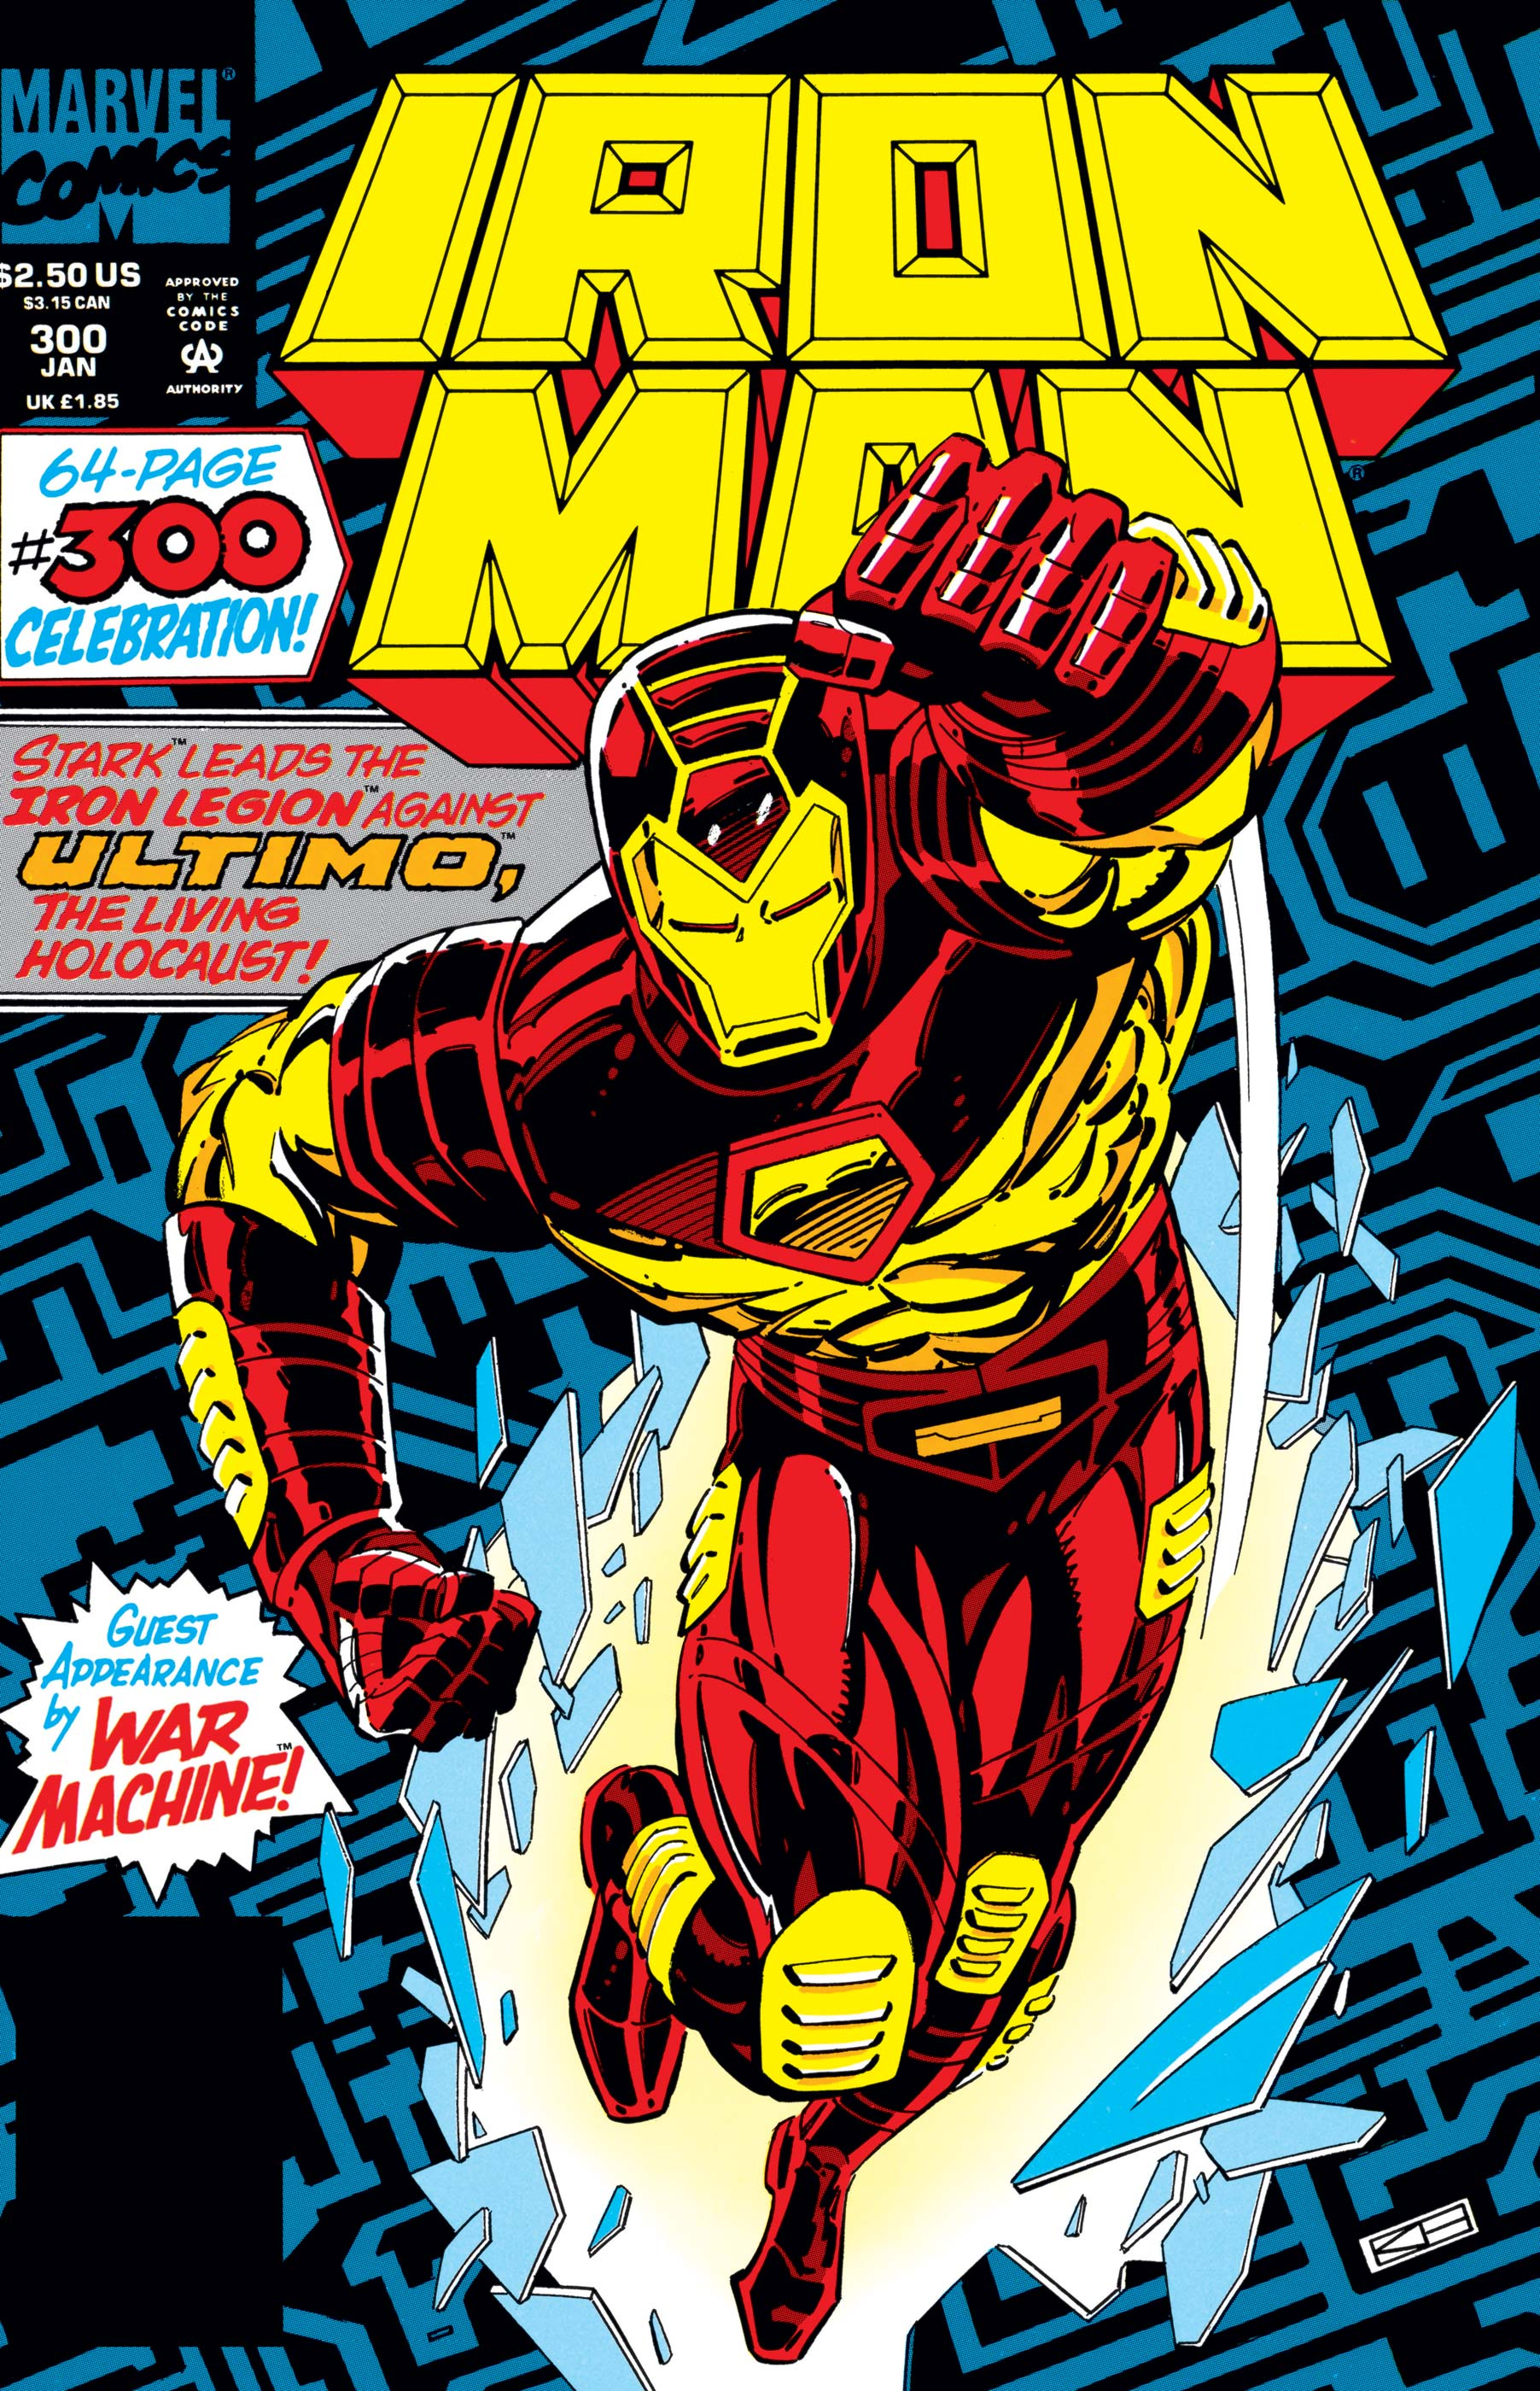 Cover from the first appearance